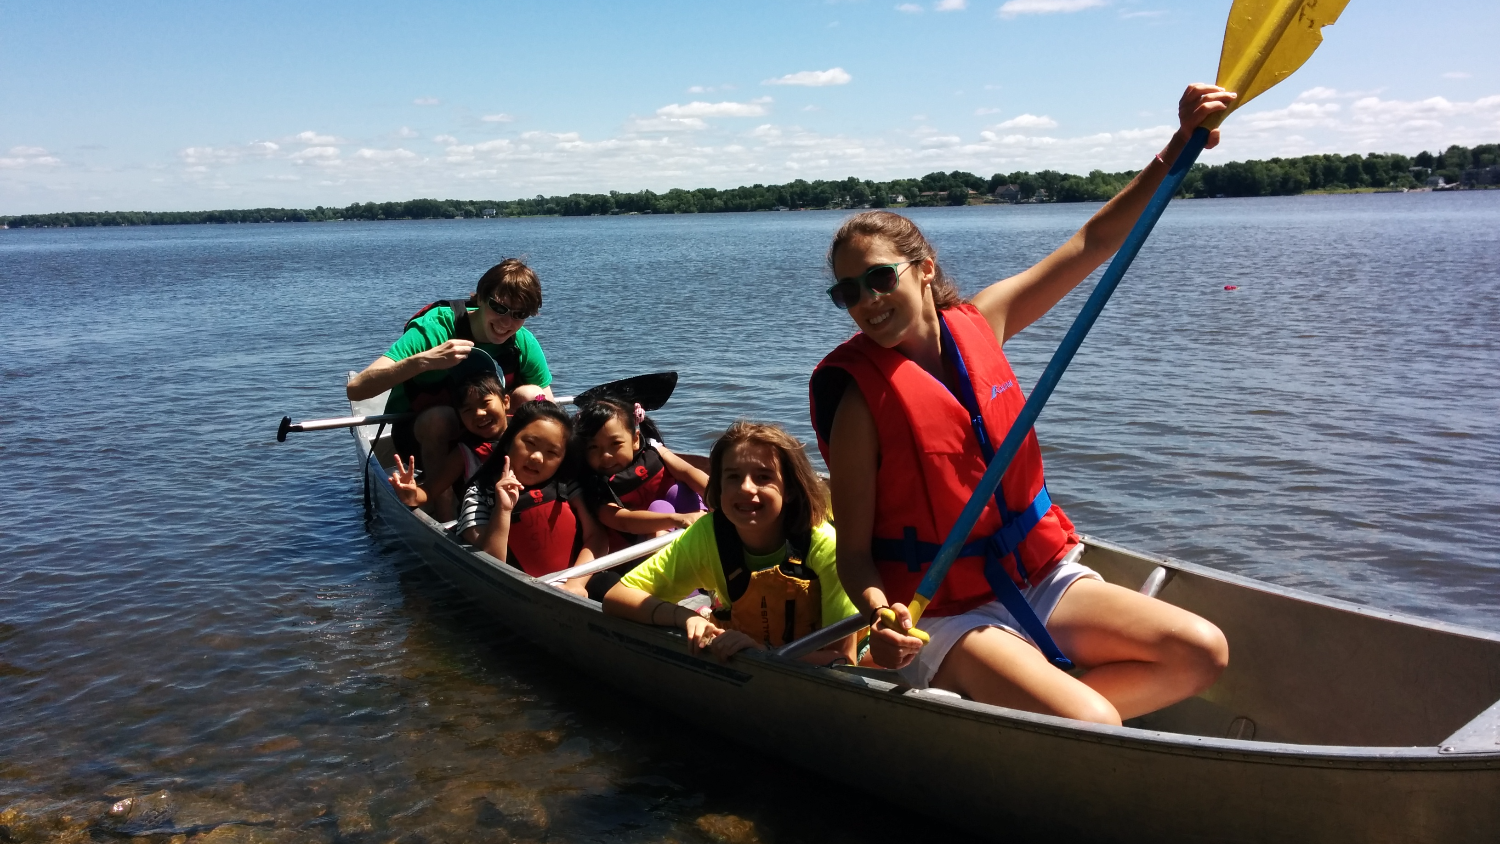 camp ecolart canoeing